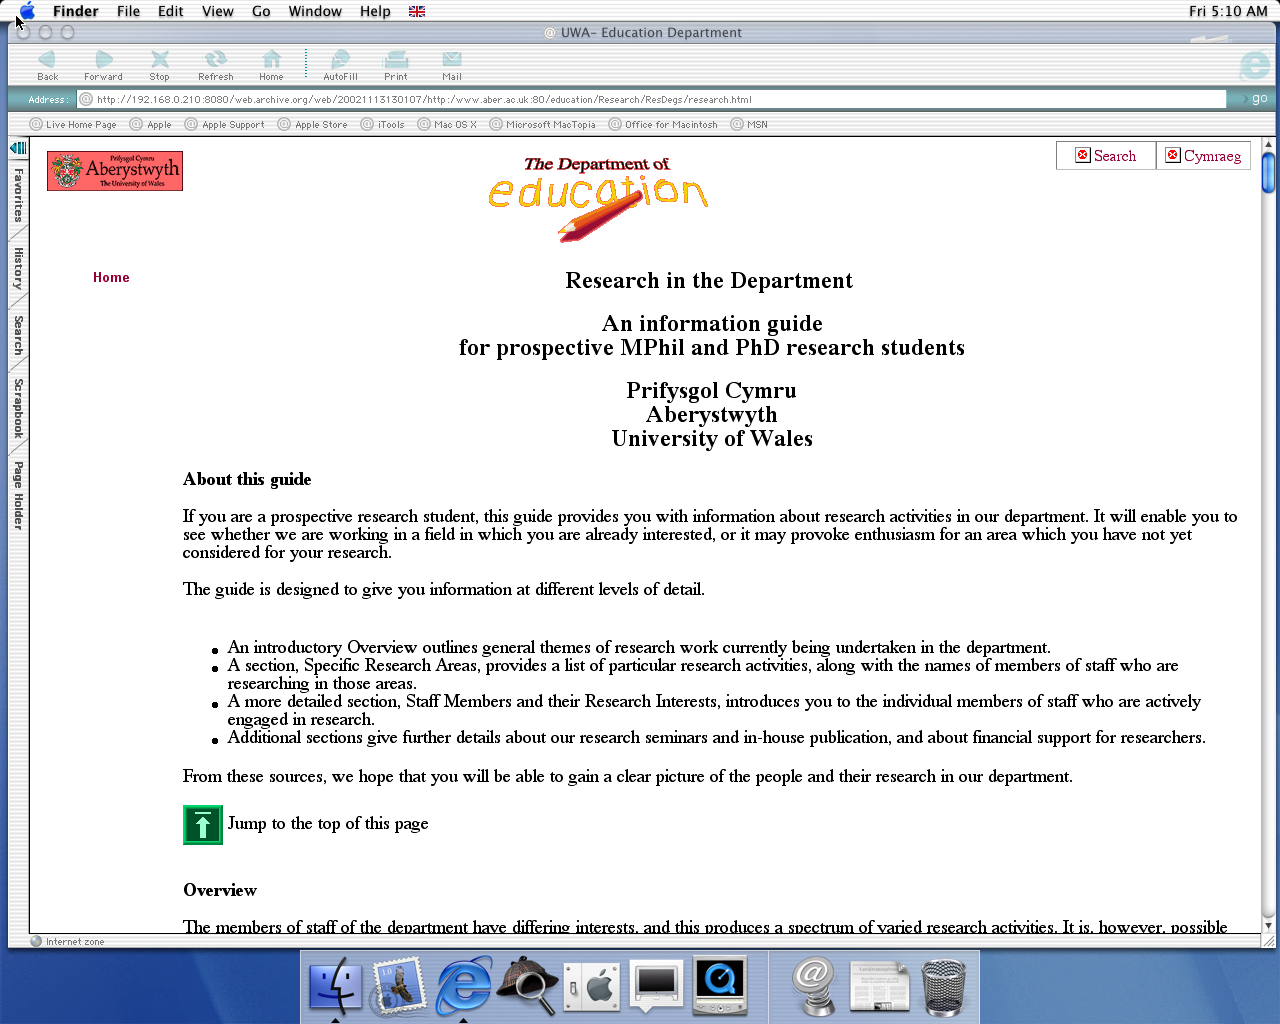 OS X 10.0 PPC with Microsoft Internet Explorer 5.1 for Mac Preview displaying a page from University of Aberystwyth archived at November 13, 2002 at 13:01:07